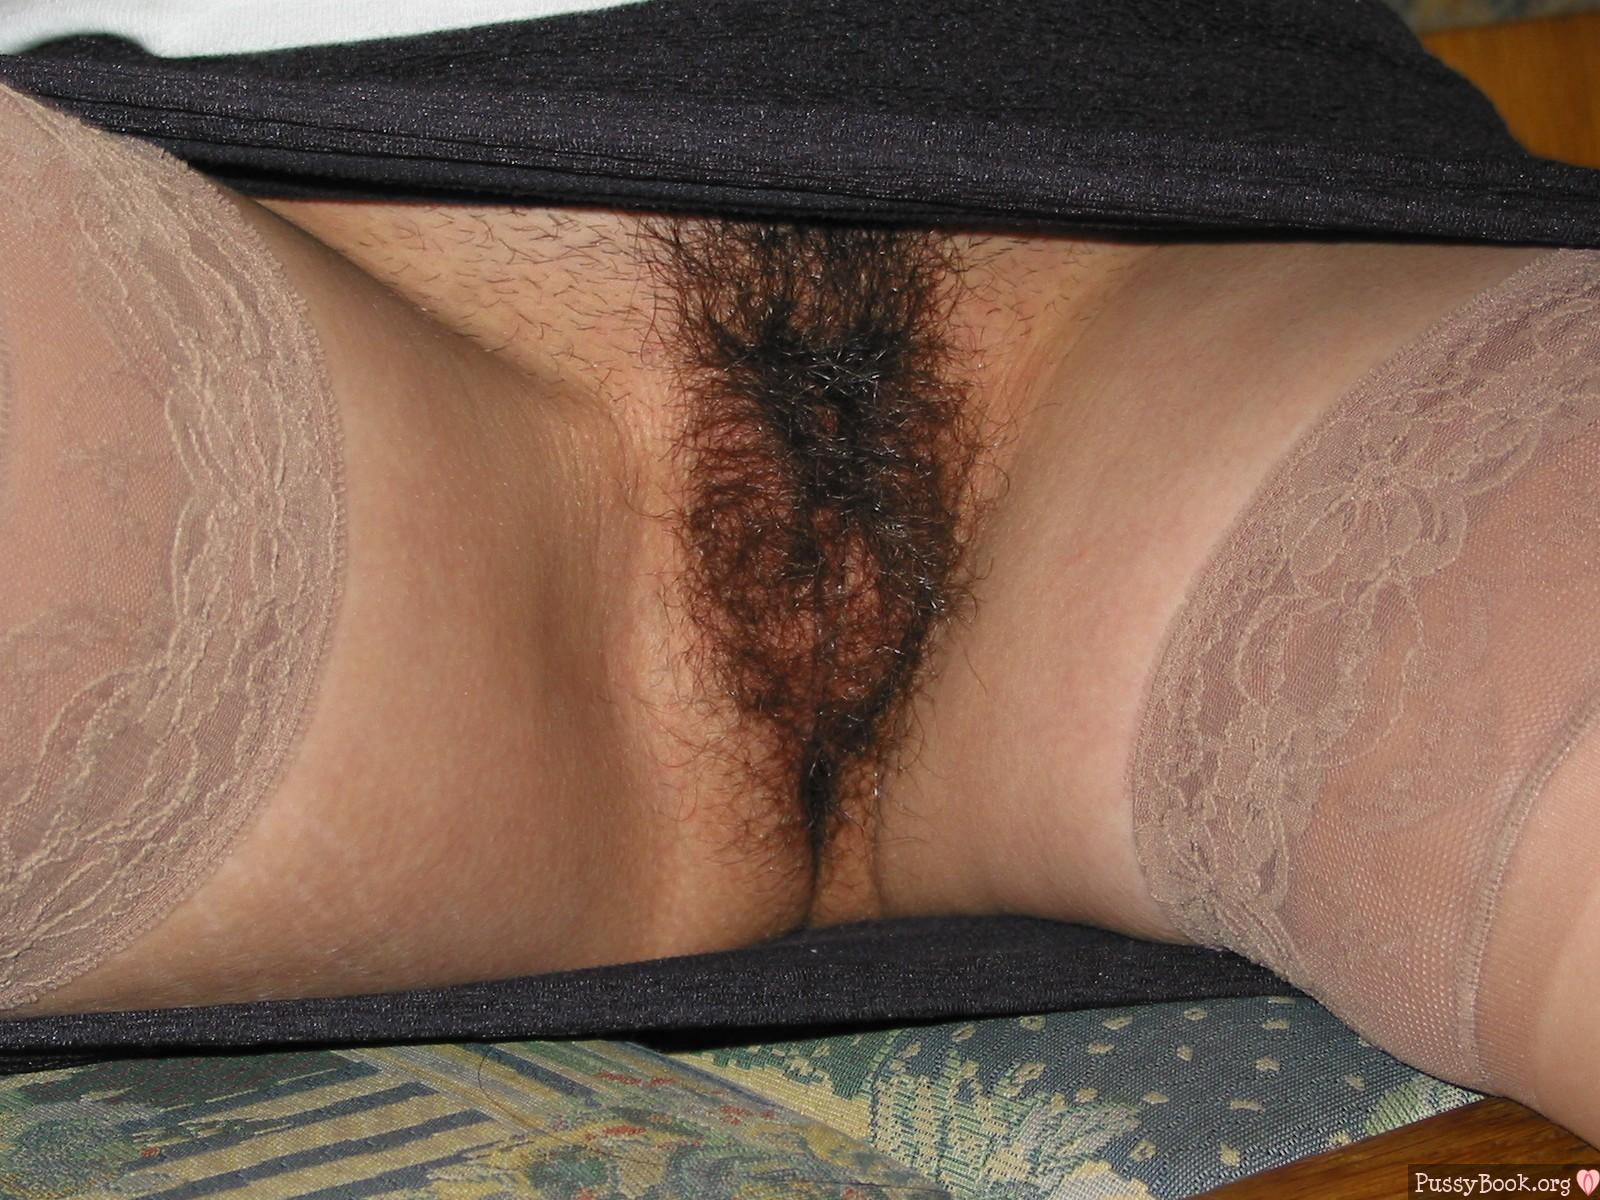 Chinese Woman Very Hairy Pussy Bush Nude Girls Pictures-3272